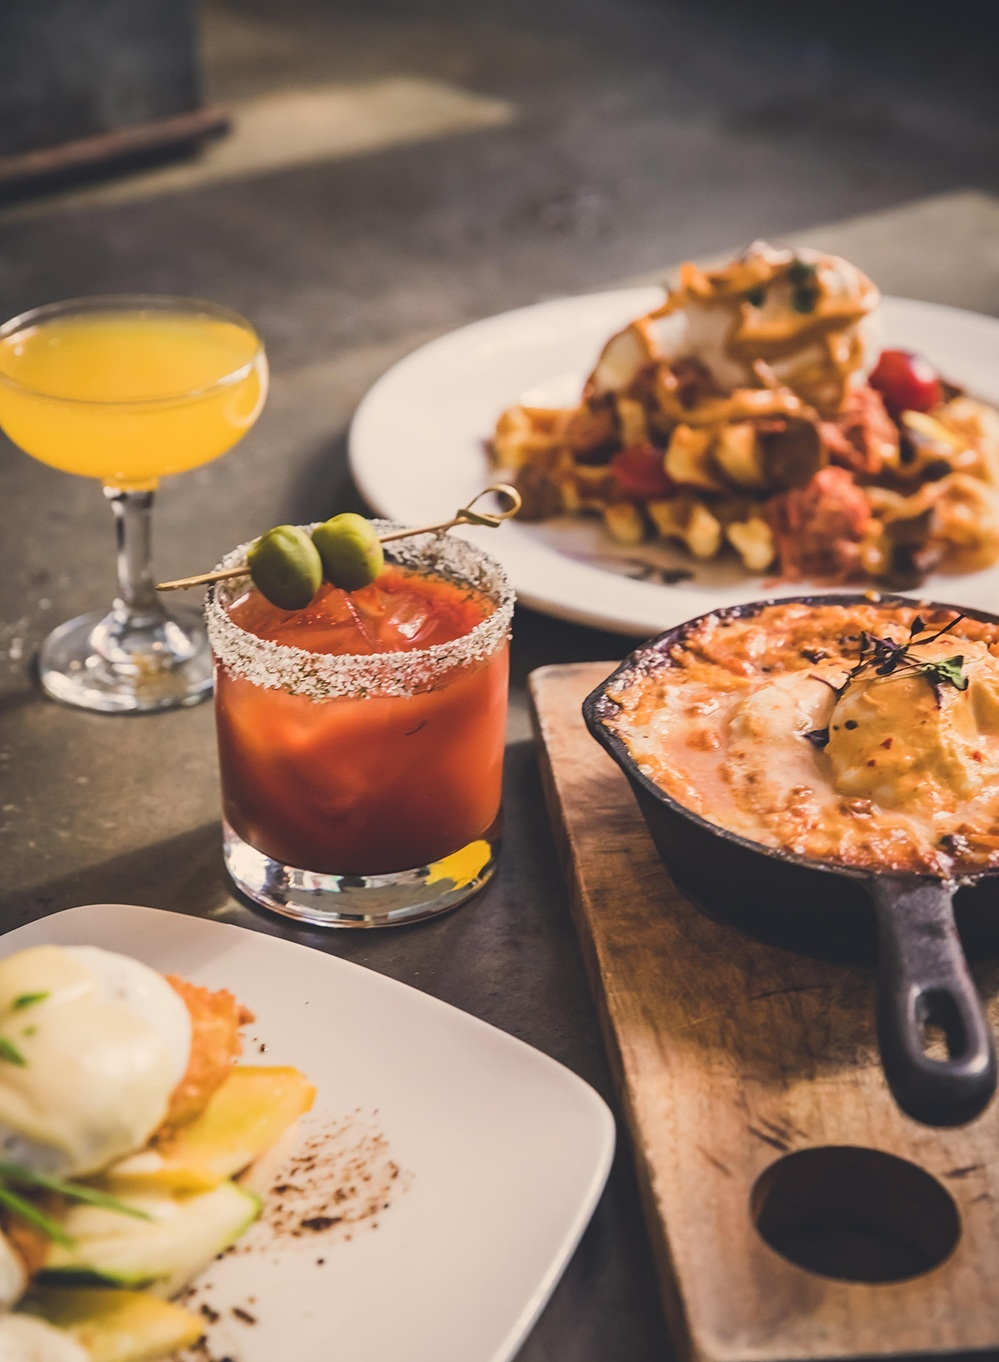 TUC CRAFT KITCHEN DEBUTS NEW BRUNCH MENU, DAYTIME HAPPY HOUR SPECIALS - February 21, 2019Comfort-food fans have a new reason to convene a meeting of the Brunch Club when Tuc Craft Kitchen introduces new brunch dishes and daytime Happy Hour drink specials at the Gastown restaurant beginning this Friday, February 22.Available Fridays from 11 a.m. to 2:30 p.m., Saturdays from 10 a.m. to 2:30 p.m. and Sundays from 10 a.m. to 3 p.m., Tuc's brunch menu offers such new additions as Tuc mex (braised lamb and black beans, two poached eggs, guajillo cream, cheddar and mozzarella cheese), waffles & pig (waffles, braised pork shoulder, two poached eggs, harissa mayo, mushroom escabeche, blistered tomatoes) and green bean & debris (two sunny eggs, red chili green beans, ground pork, potato hay).